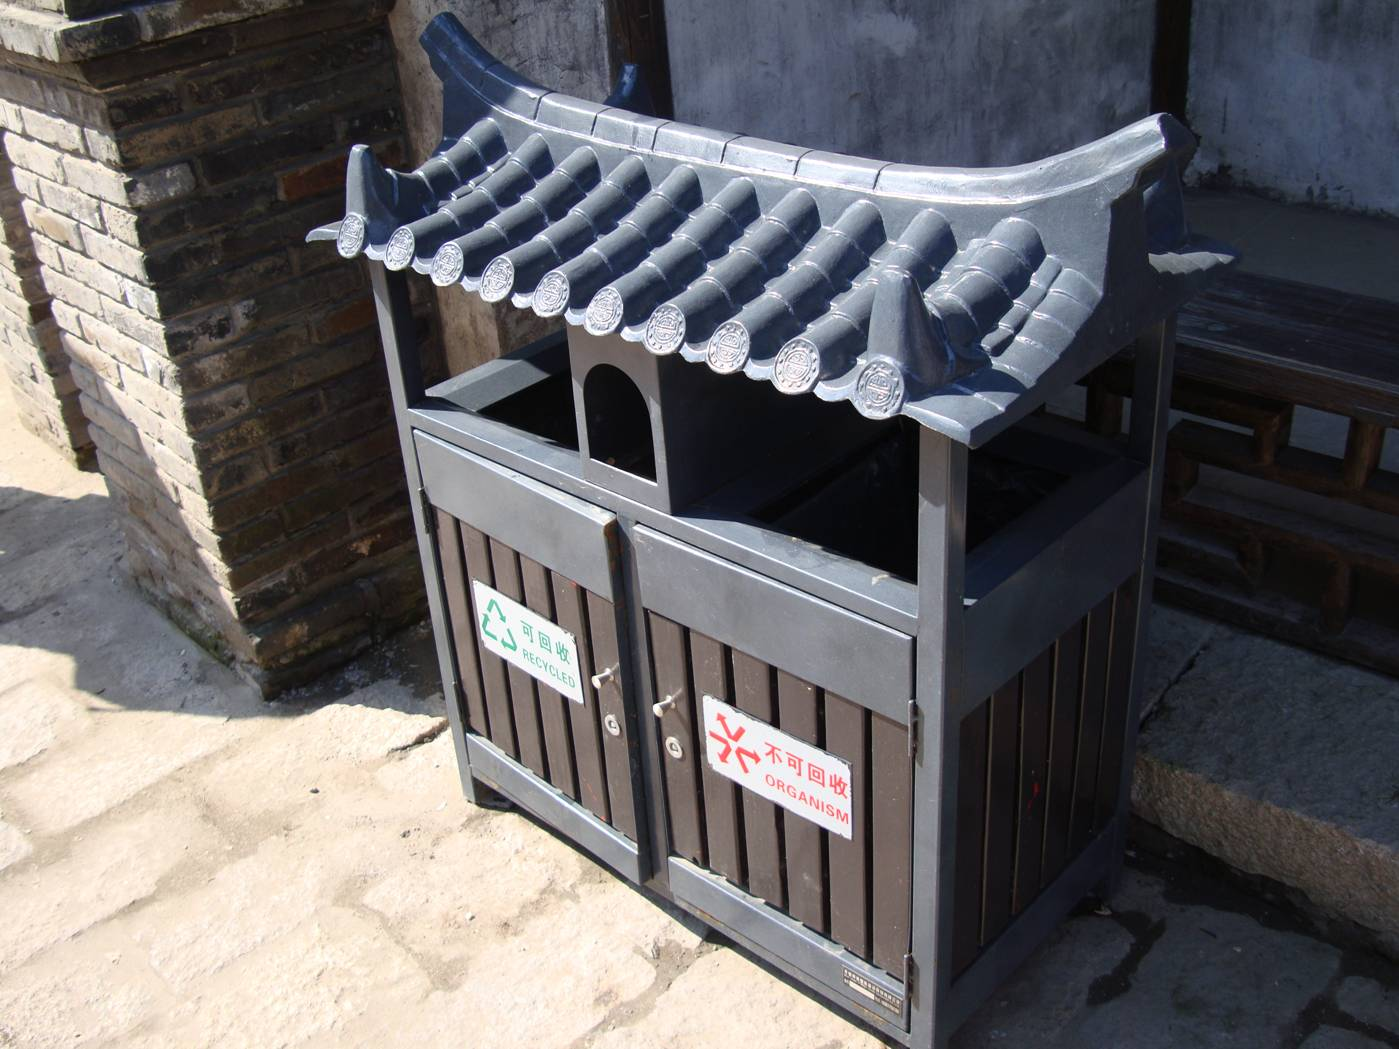 Picture:  The ancient theme is carried into the garbage receptacles, with questionable stylistic success.  Wuxi old city, Wuxi, China